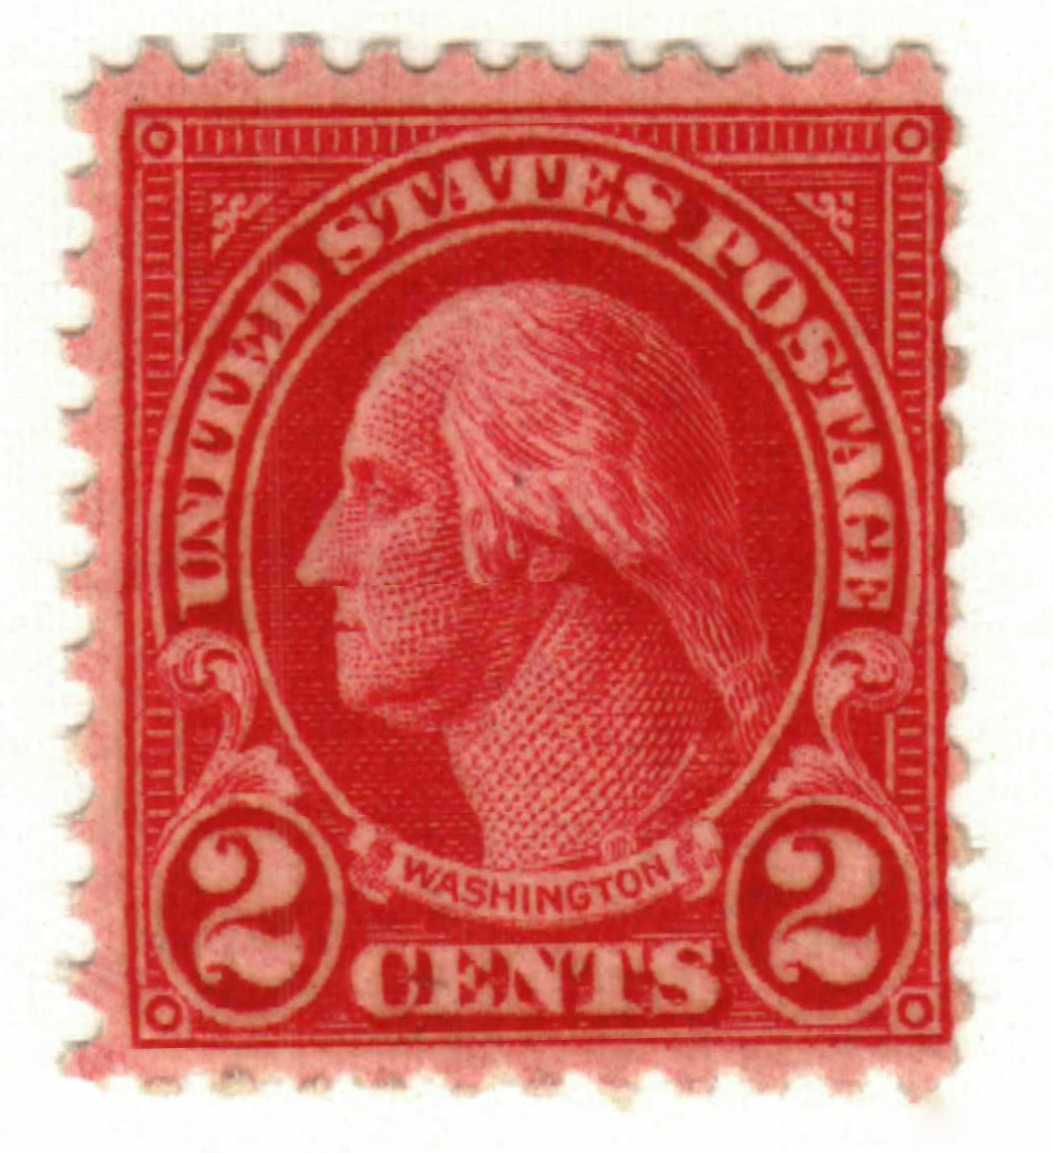 1928 2c Washingtoncarmine Type II For Sale At Mystic Stamp Company